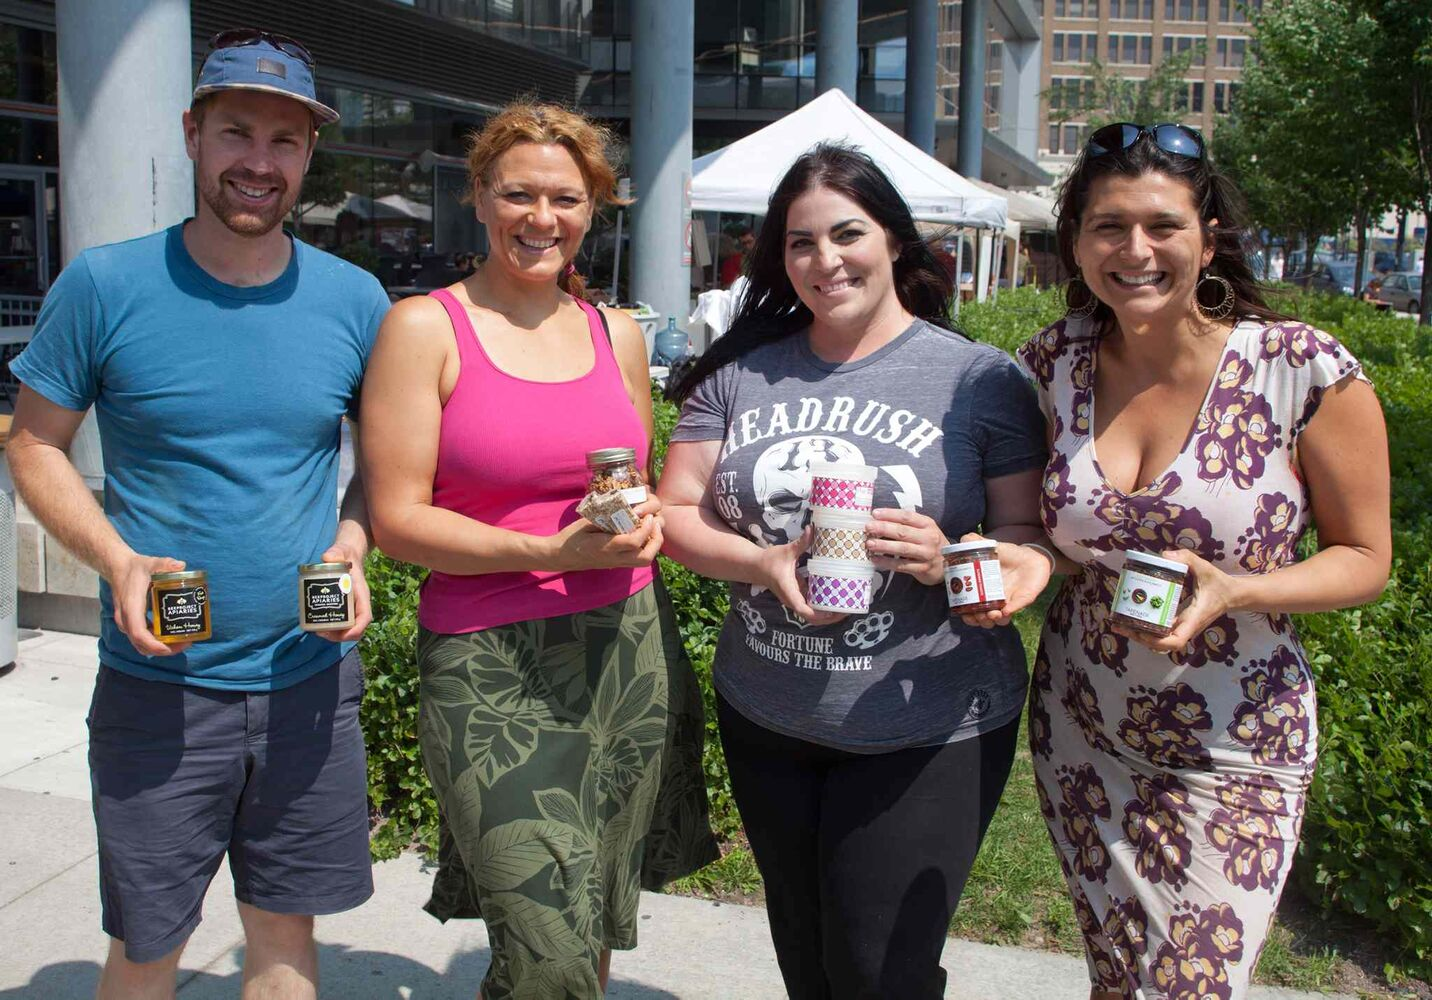 Unique products, baking and produce are available at the outdoor Downtown Farmer's Market at Manitoba Hydro Place. The market, organized by Downtown Winnipeg BIZ, is open from 10 a.m. to 3 p.m. every Thursday during the summer months, until mid-September. It then reverts to a monthly event indoors. Pictured, from left, are Chris Kirouac (beeproject.ca), Rebecca Hadfield (zenbars.ca), Angela Filbert (whippedcosmetics.com) and Bessie Hatizitrifonos (bessiesbestfoods.com).  (John Johnston / Winnipeg Free Press)